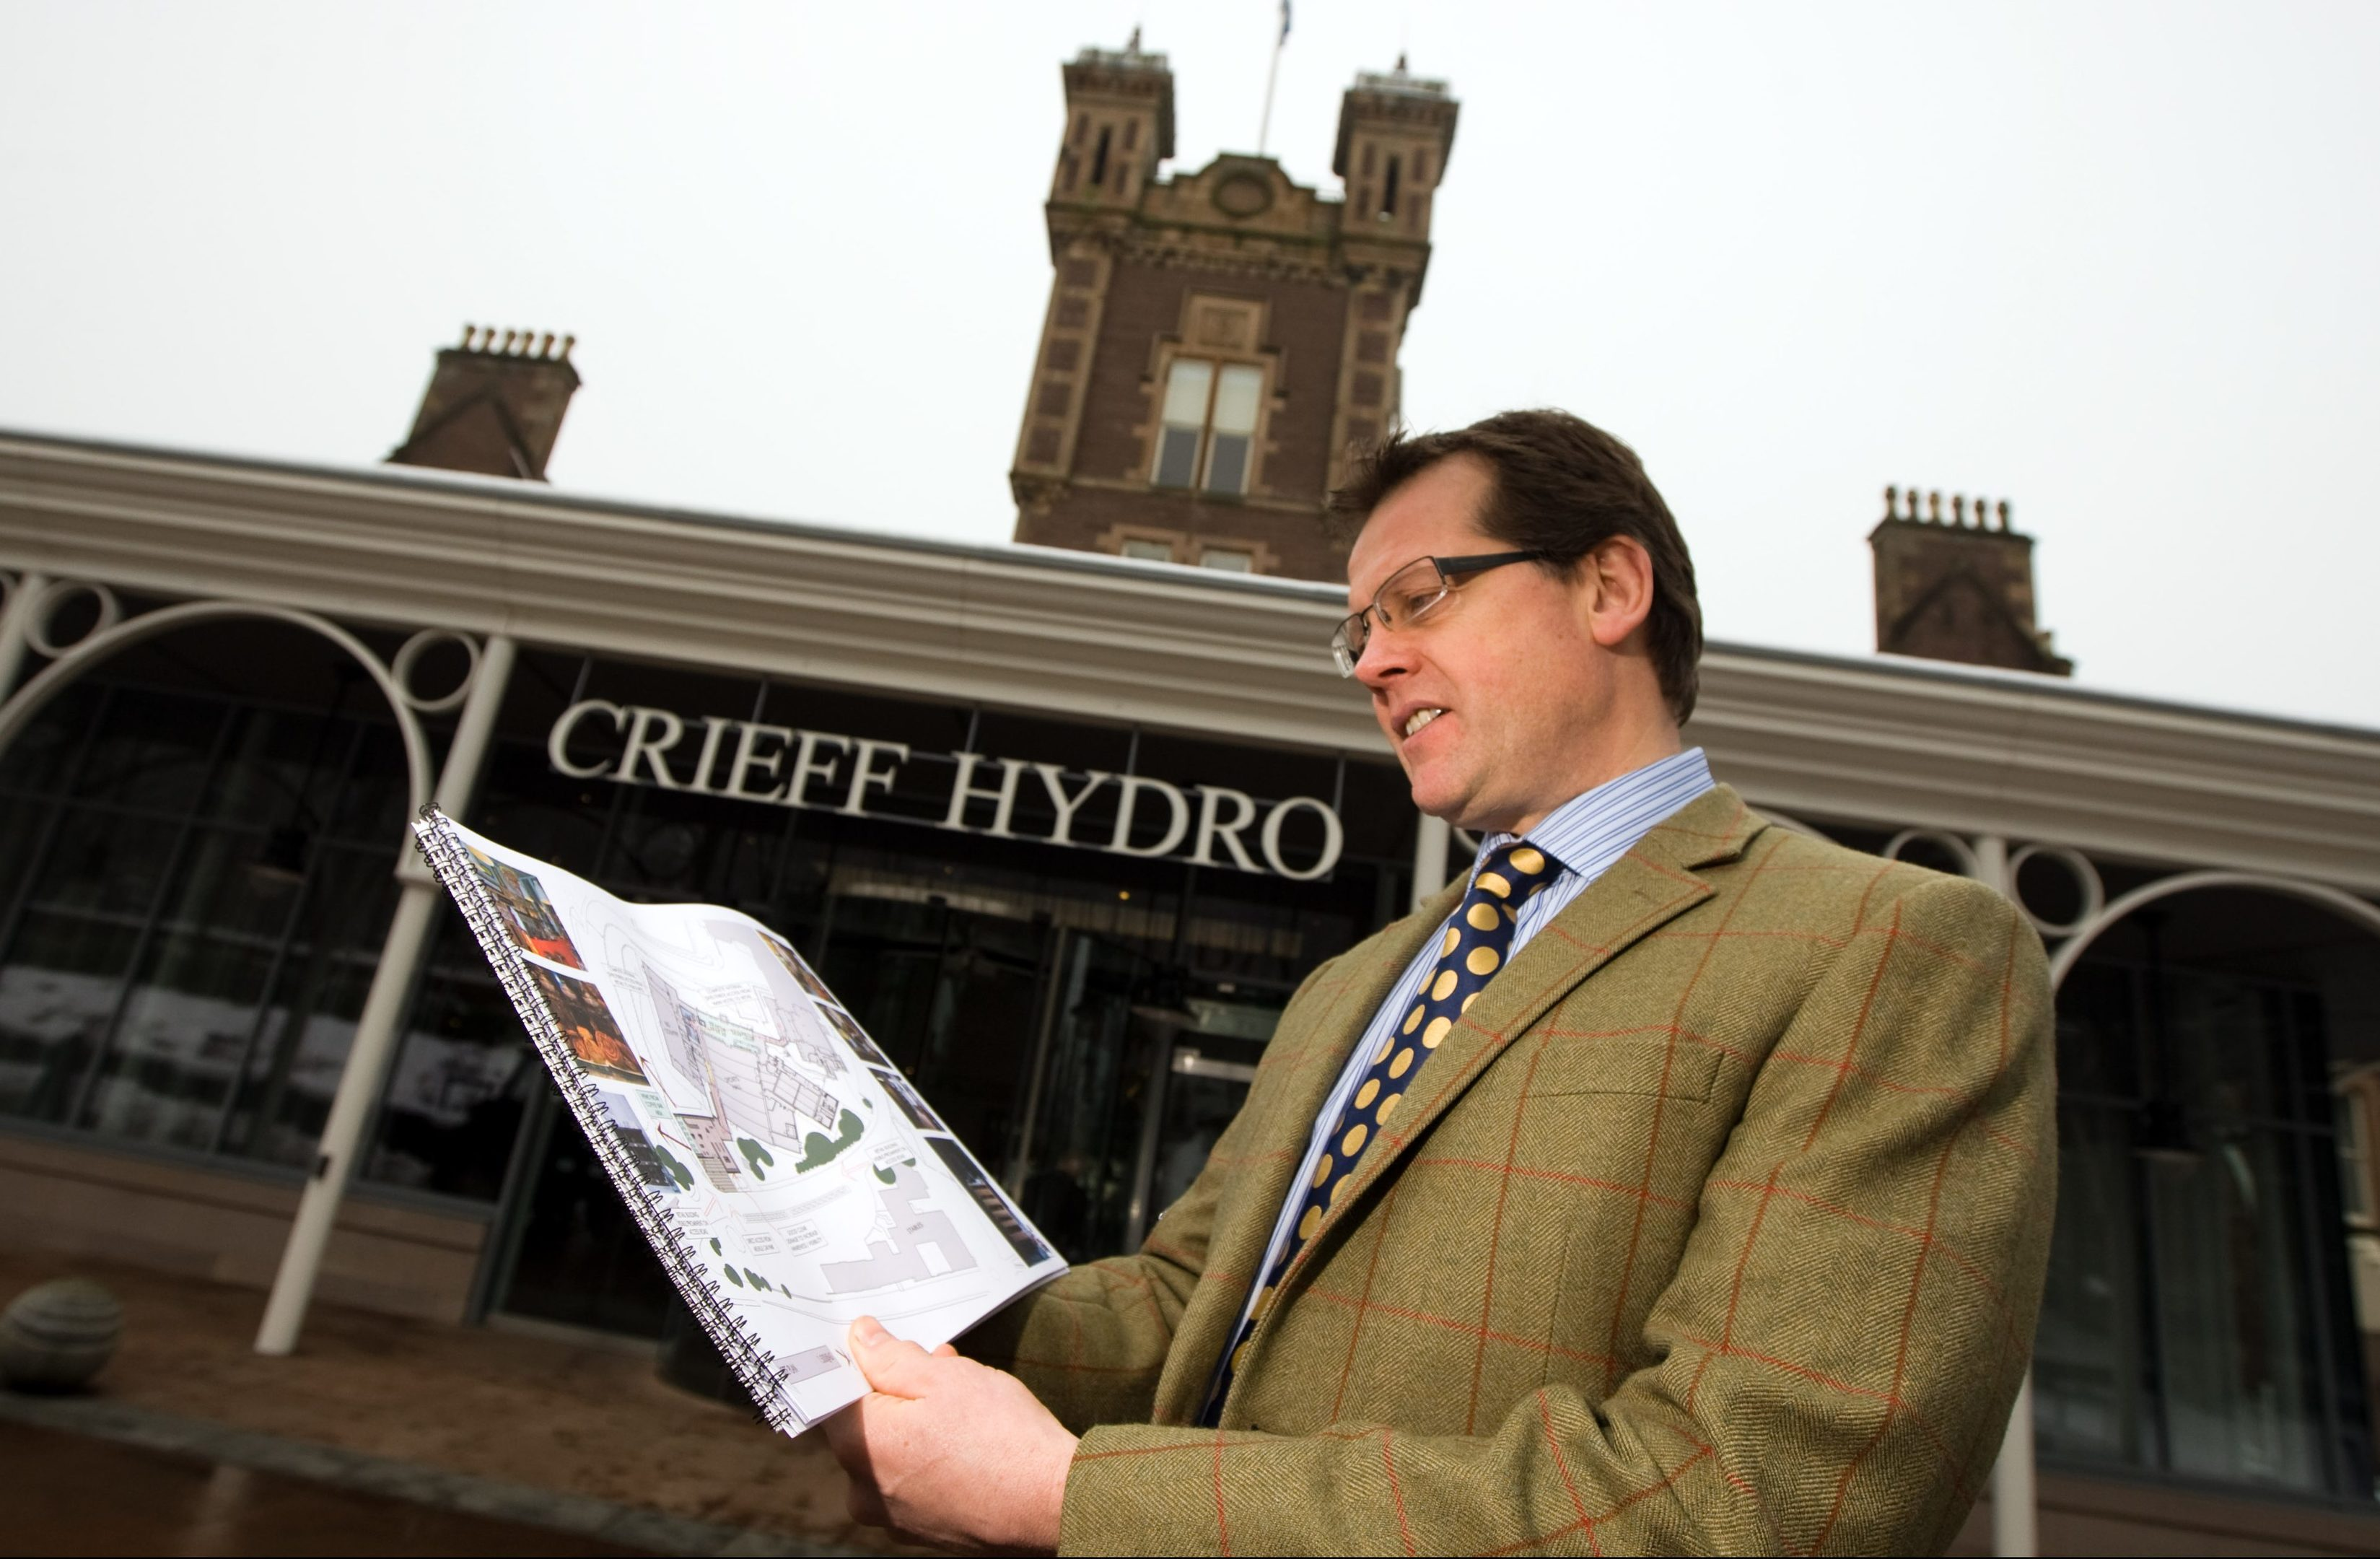 Stephen Leckie with the Crieff Hydro East development plans.